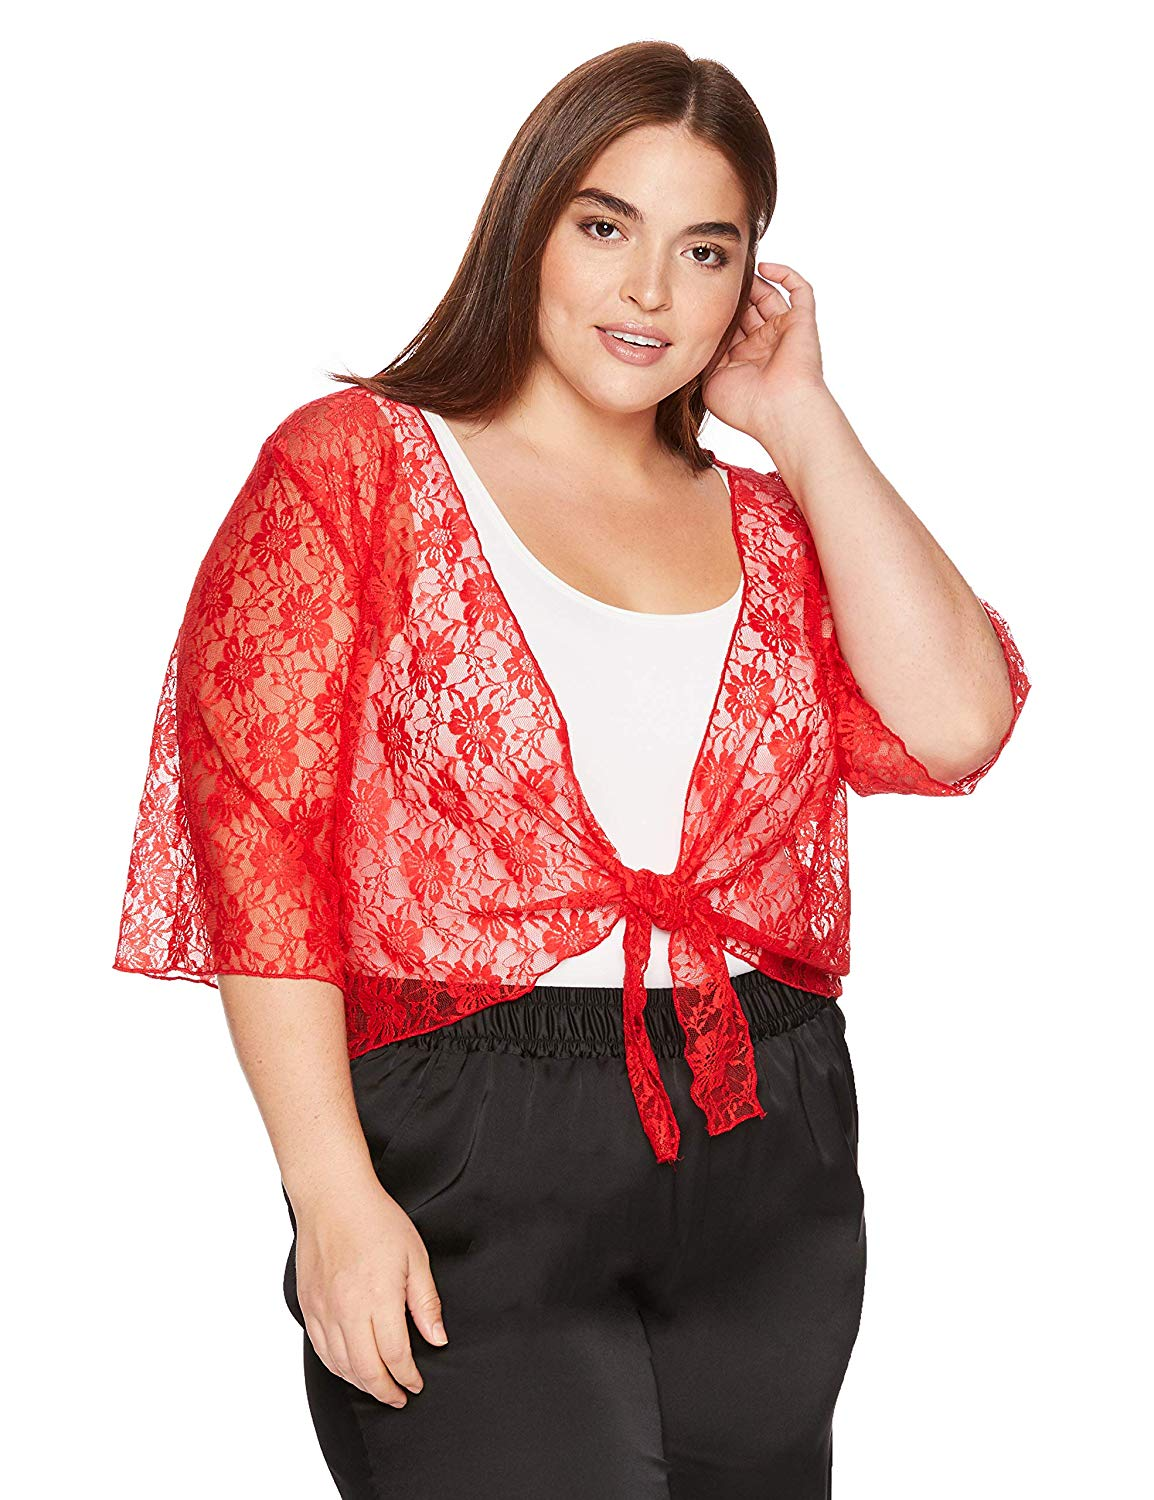 2092bd226712bb Get Quotations · Star Vixen Women's Plus-Size 3/4 Sleeve Stretch Lace  Tiefront Shrug Sweater